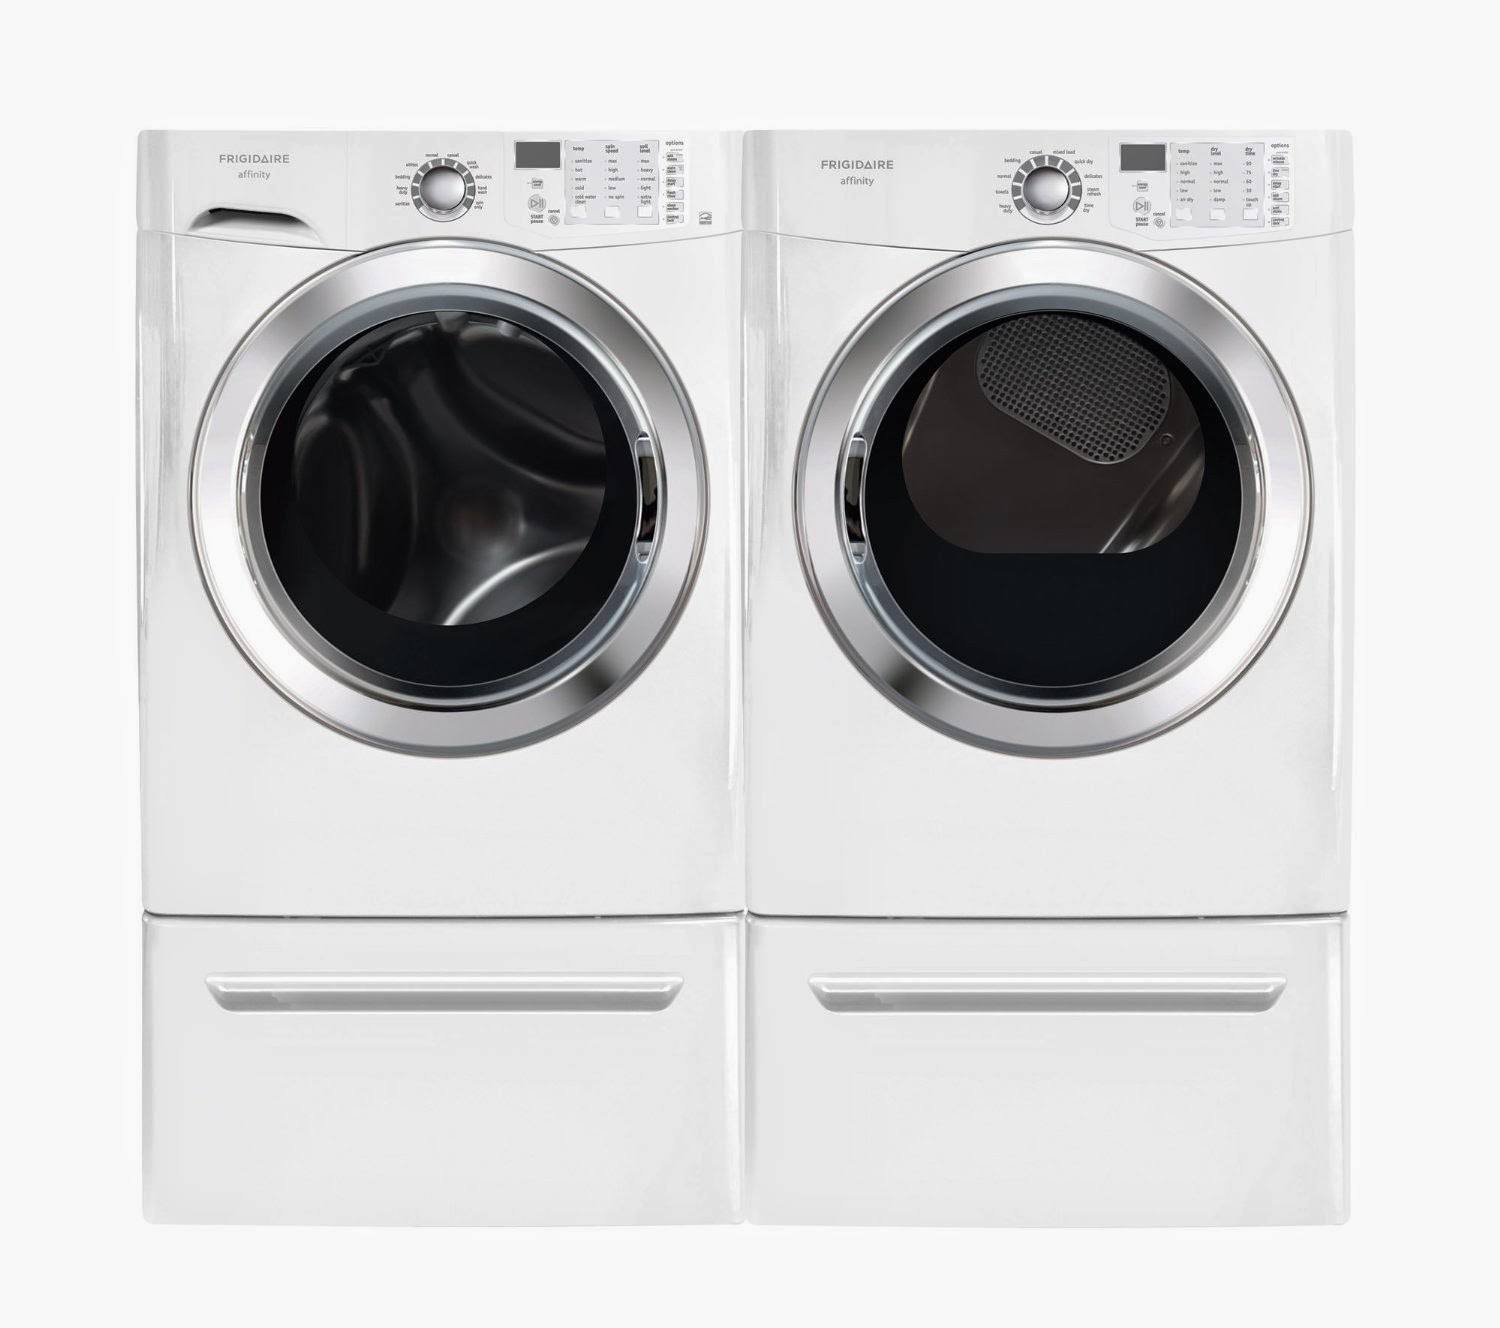 Frigidaire 3 8 Cf Front Load Steam Washer And 7 0 Dryer Laundry Set With Pedestals